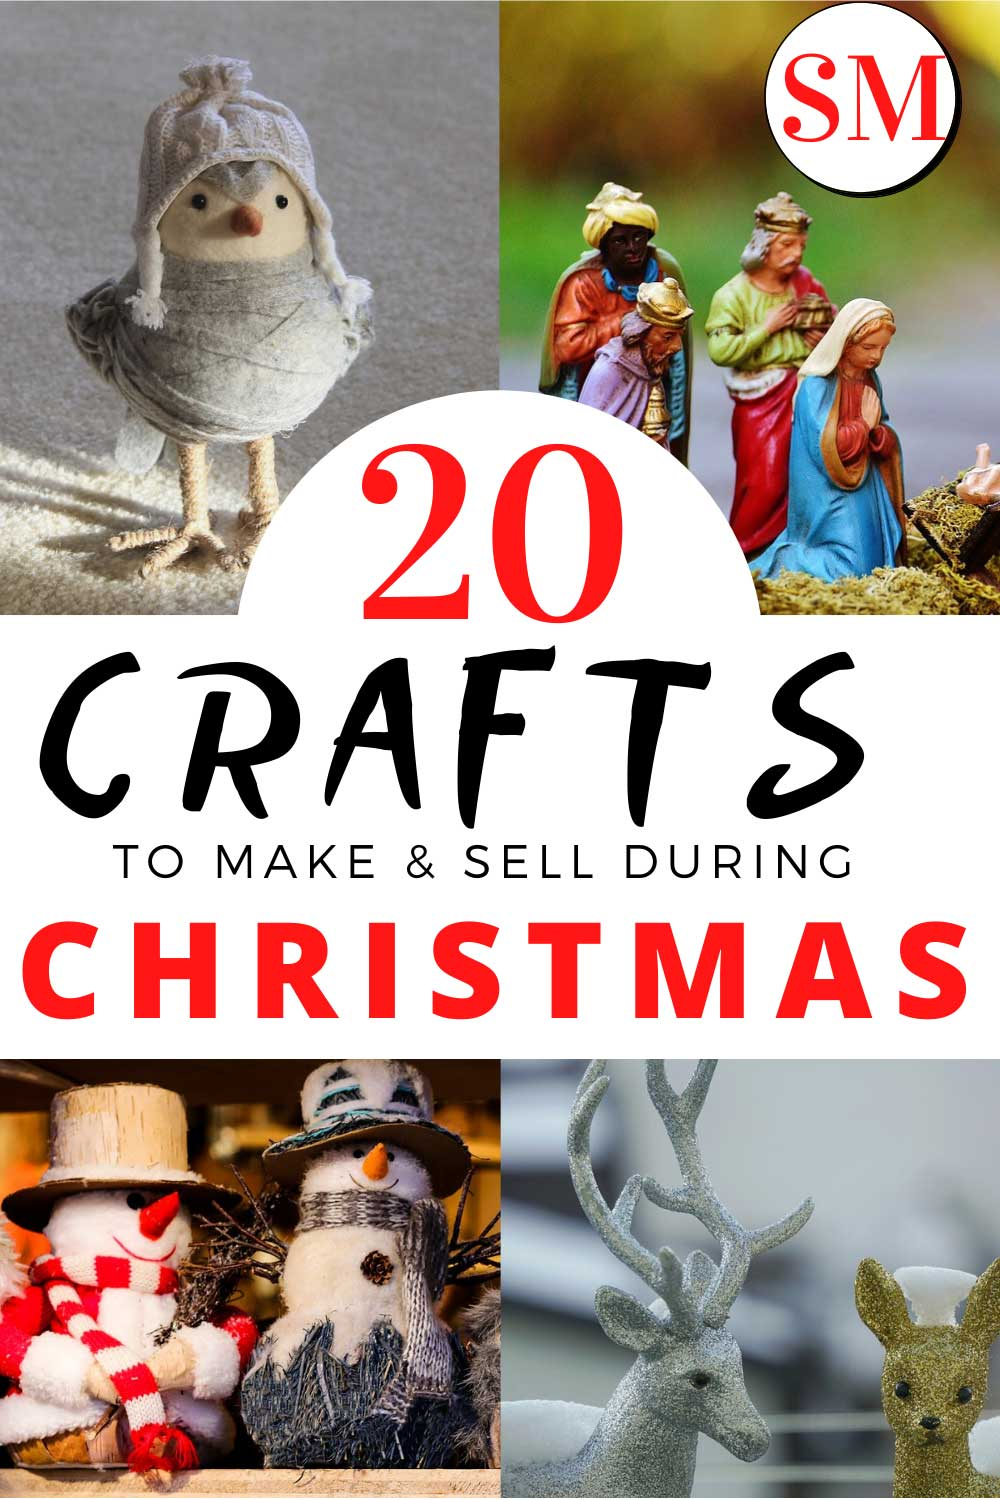 CHRISTMAS-CRAFTS-TO-SELL-SPROUTMENTOR-PIN-IMAGE